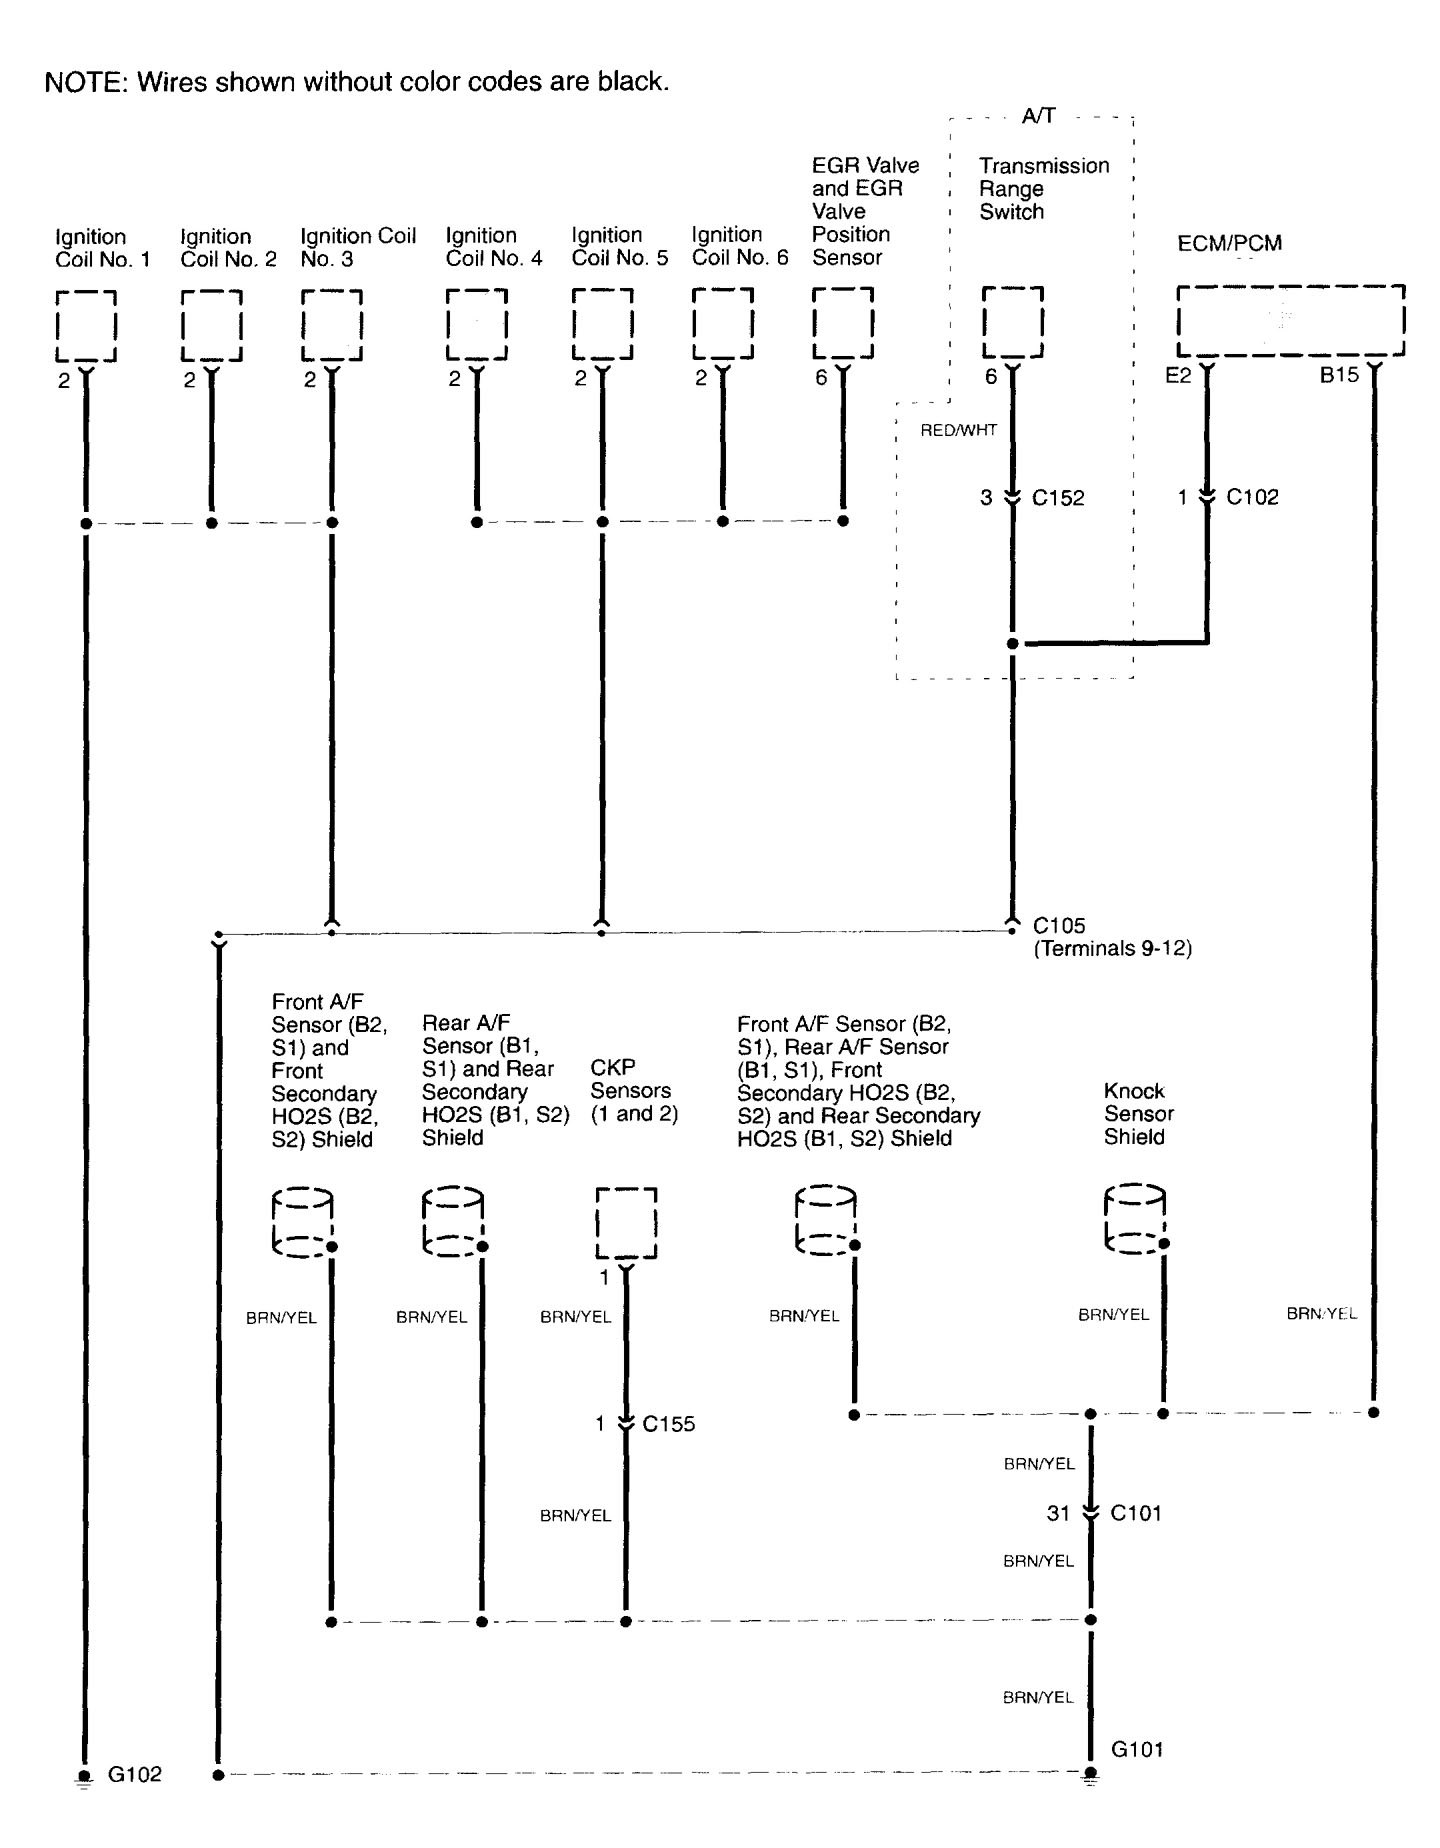 Ground Wire    Diagram    03 Kia Sorento   34    Wiring       Diagram    Images     Wiring    Diagrams   Homesupportco